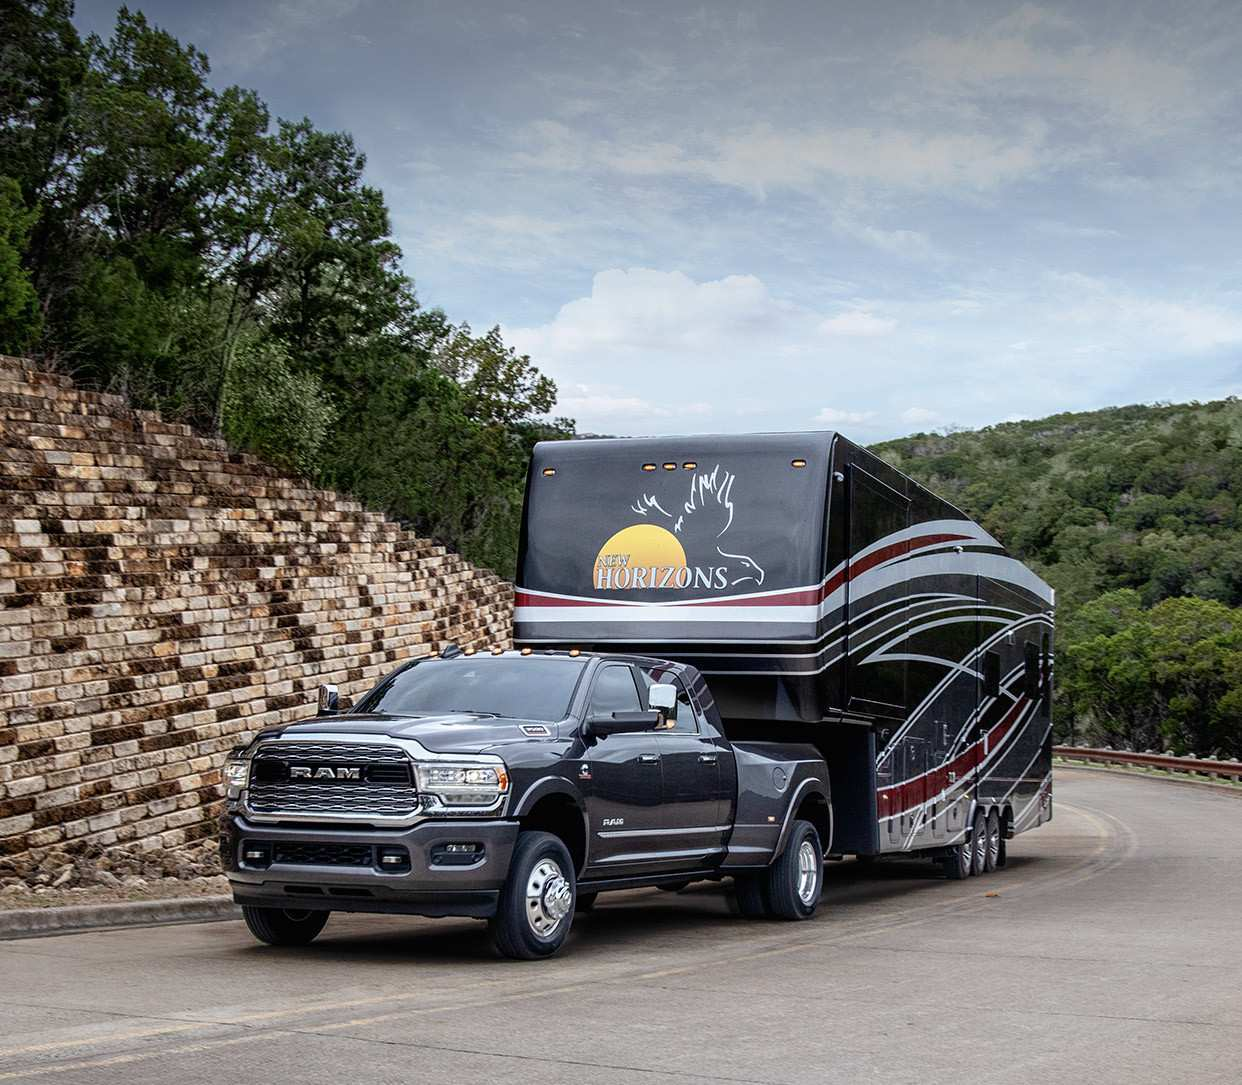 58 Best 2019 Dodge 1500 Towing Capacity Price Design and Review